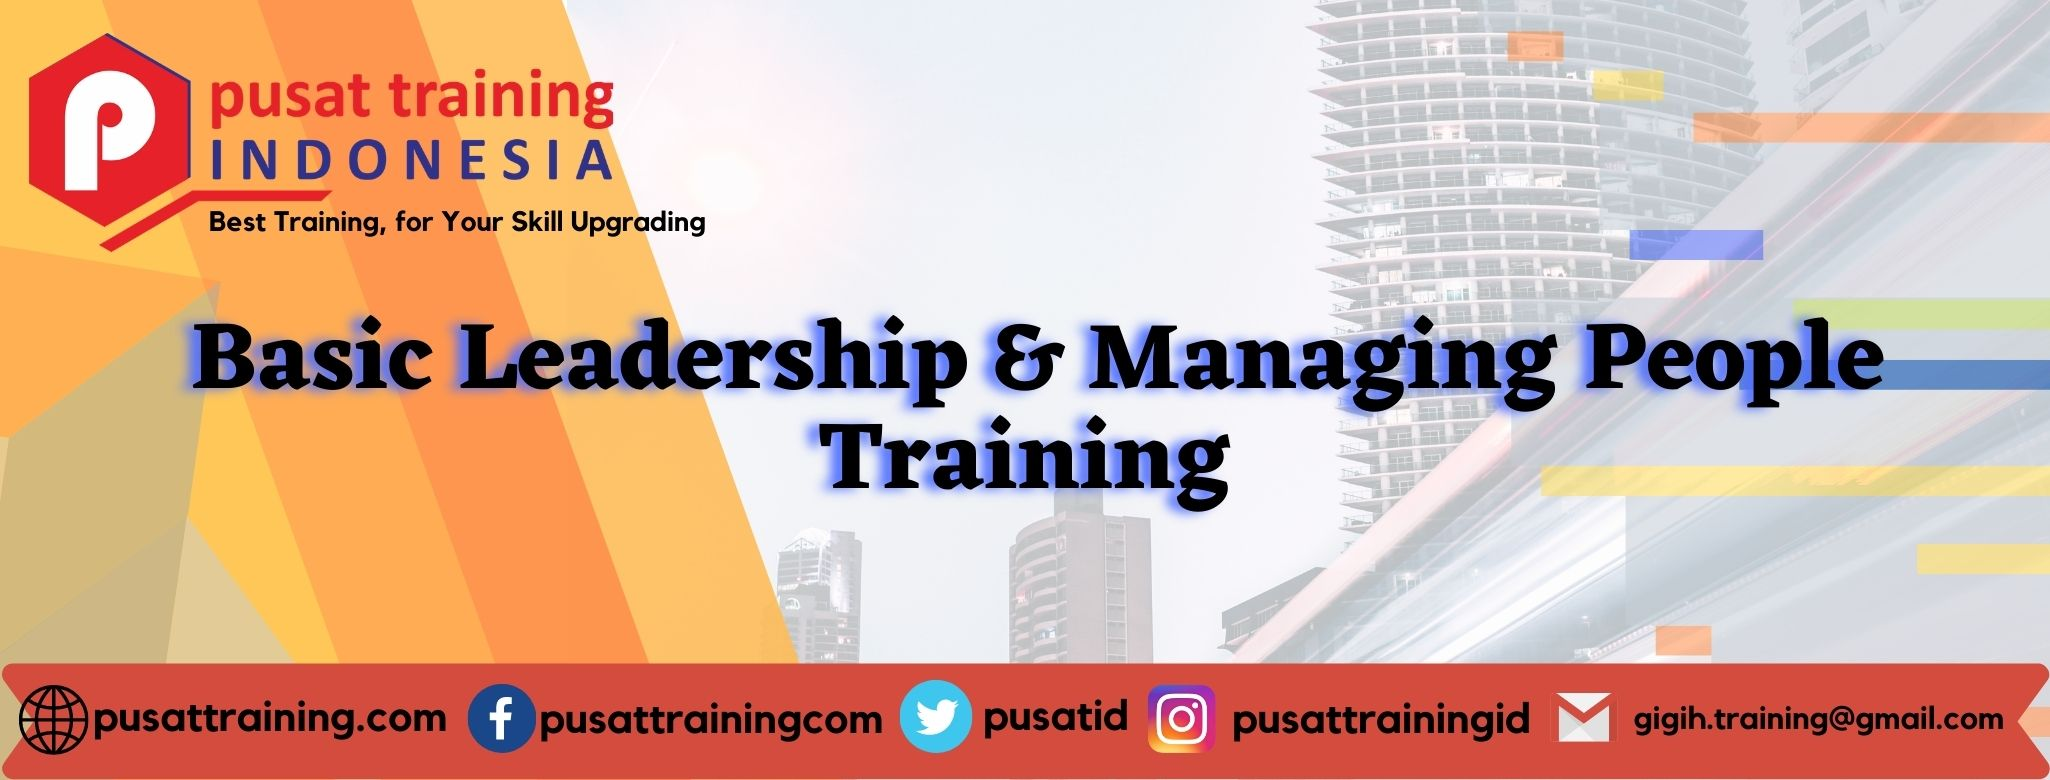 Training Basic Leadership & Managing People